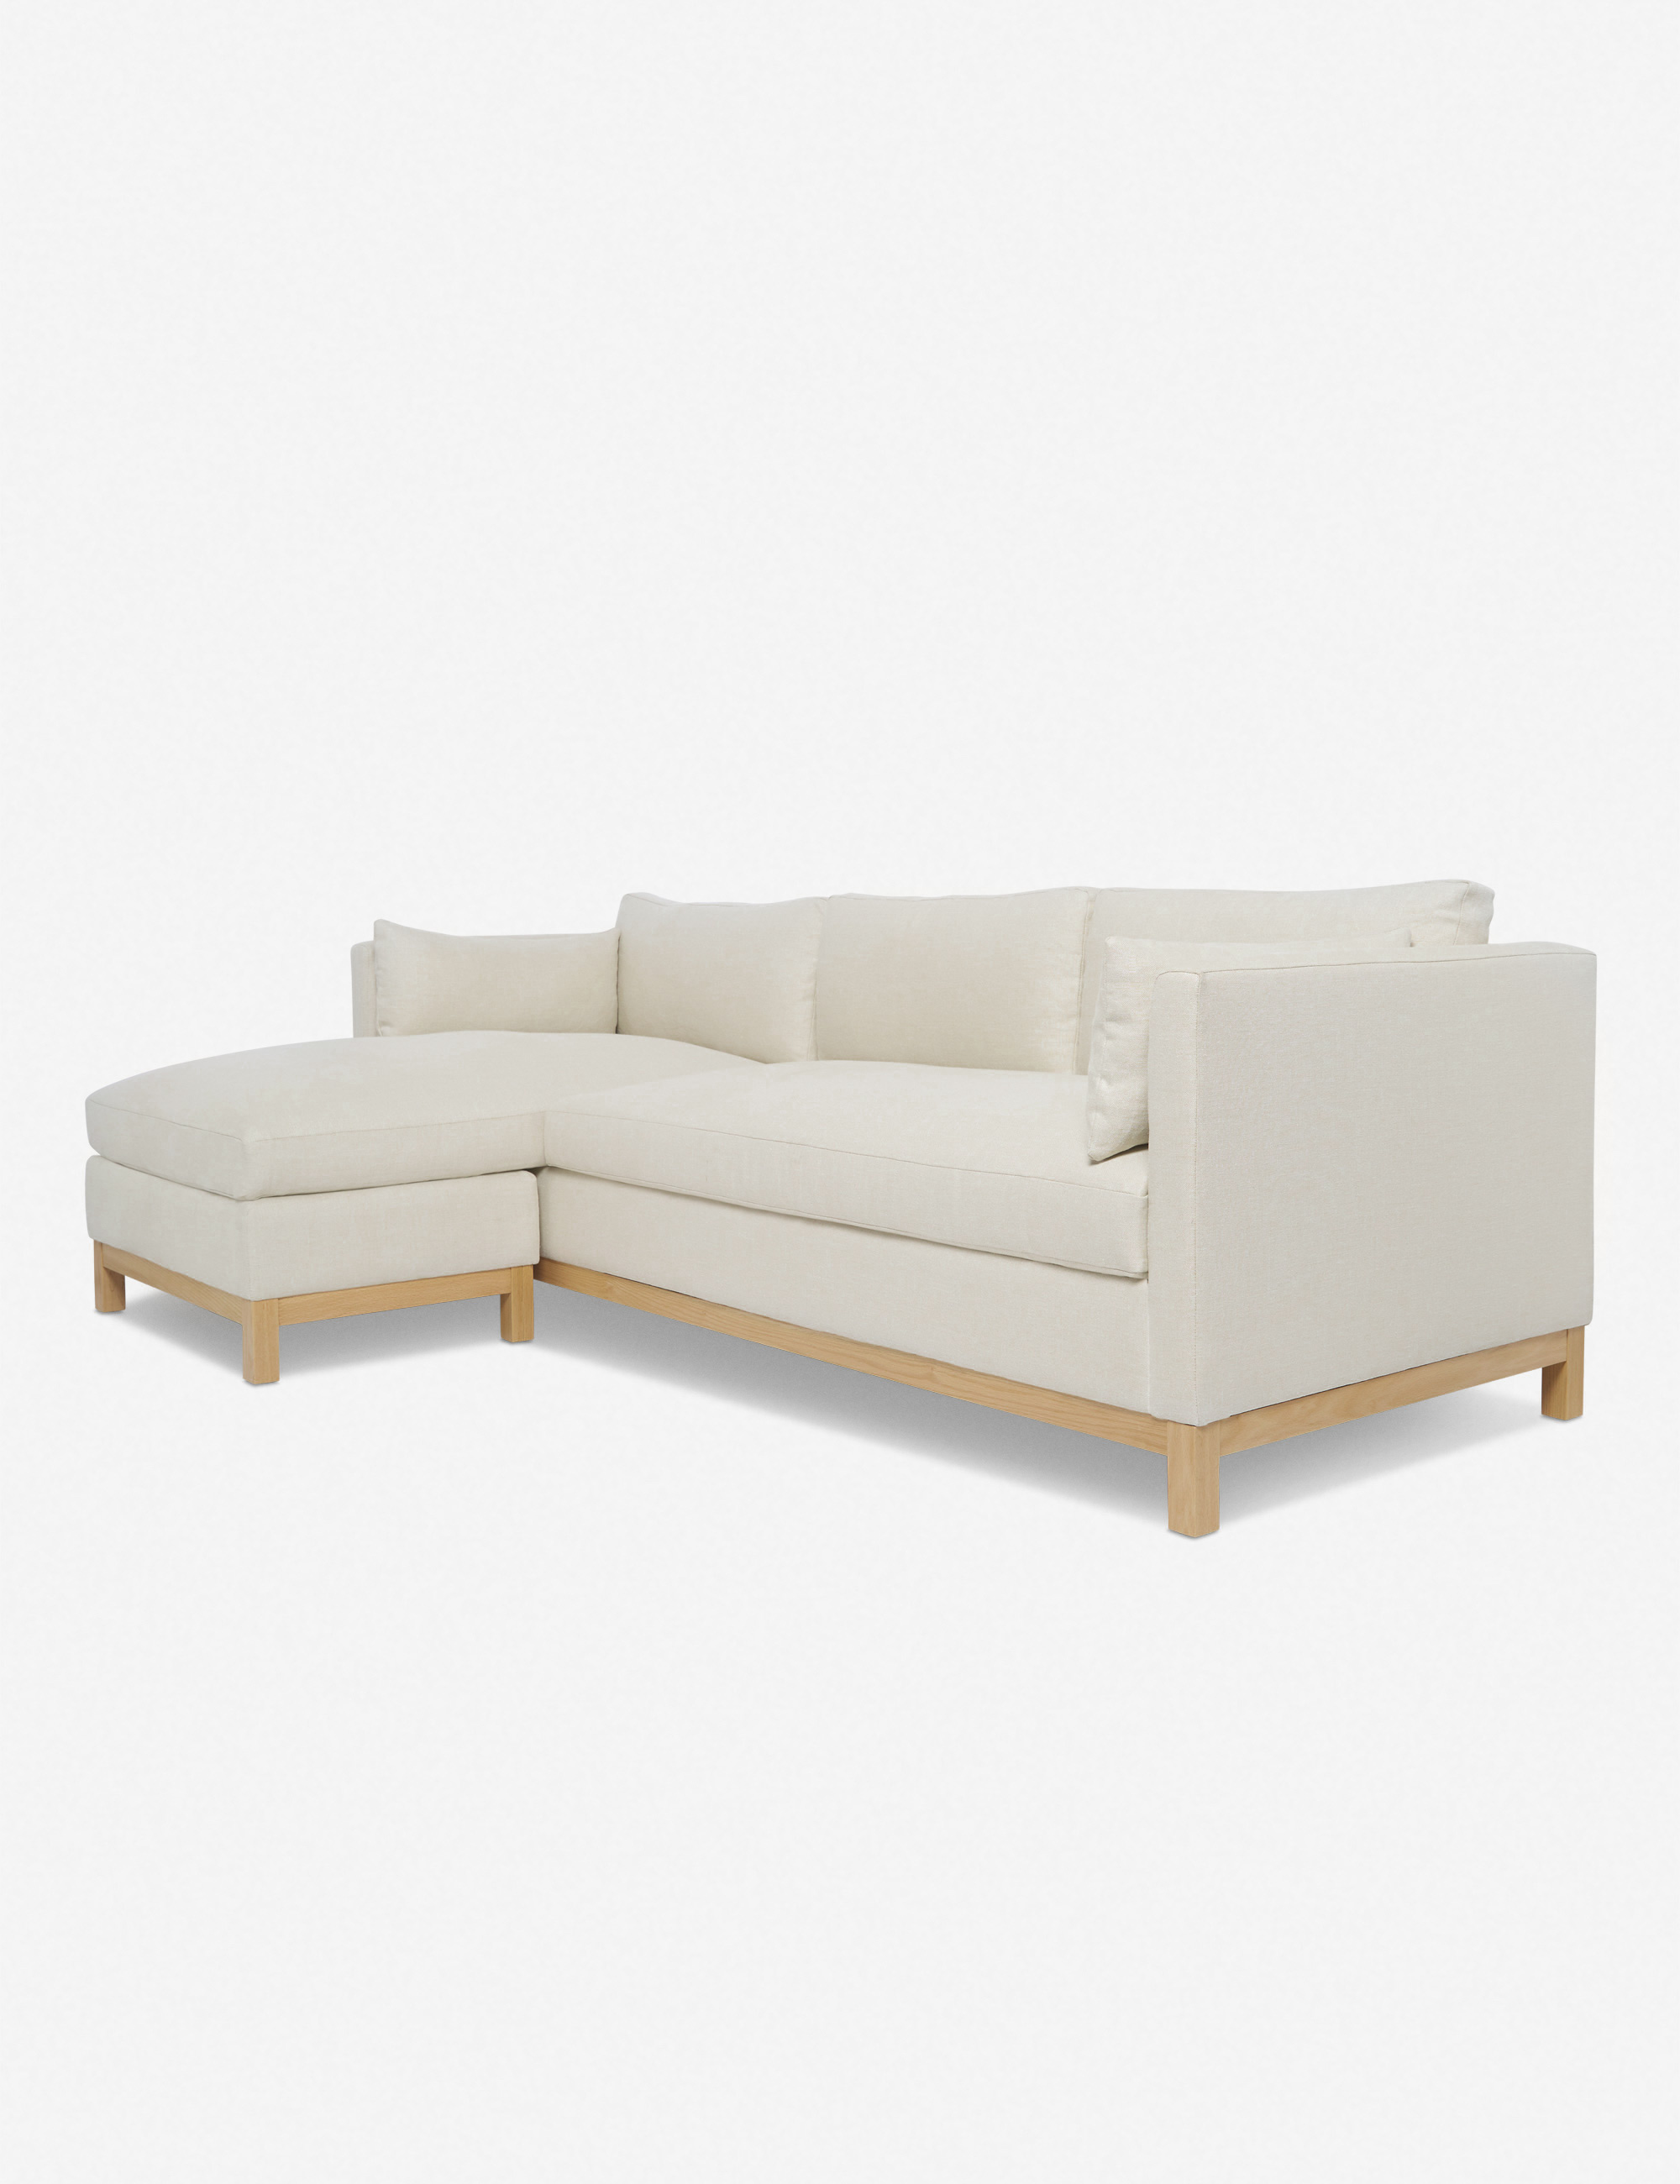 GINNY_MACDONALD_Hollingworth-Sectional-LAF-Linen-Natural-5